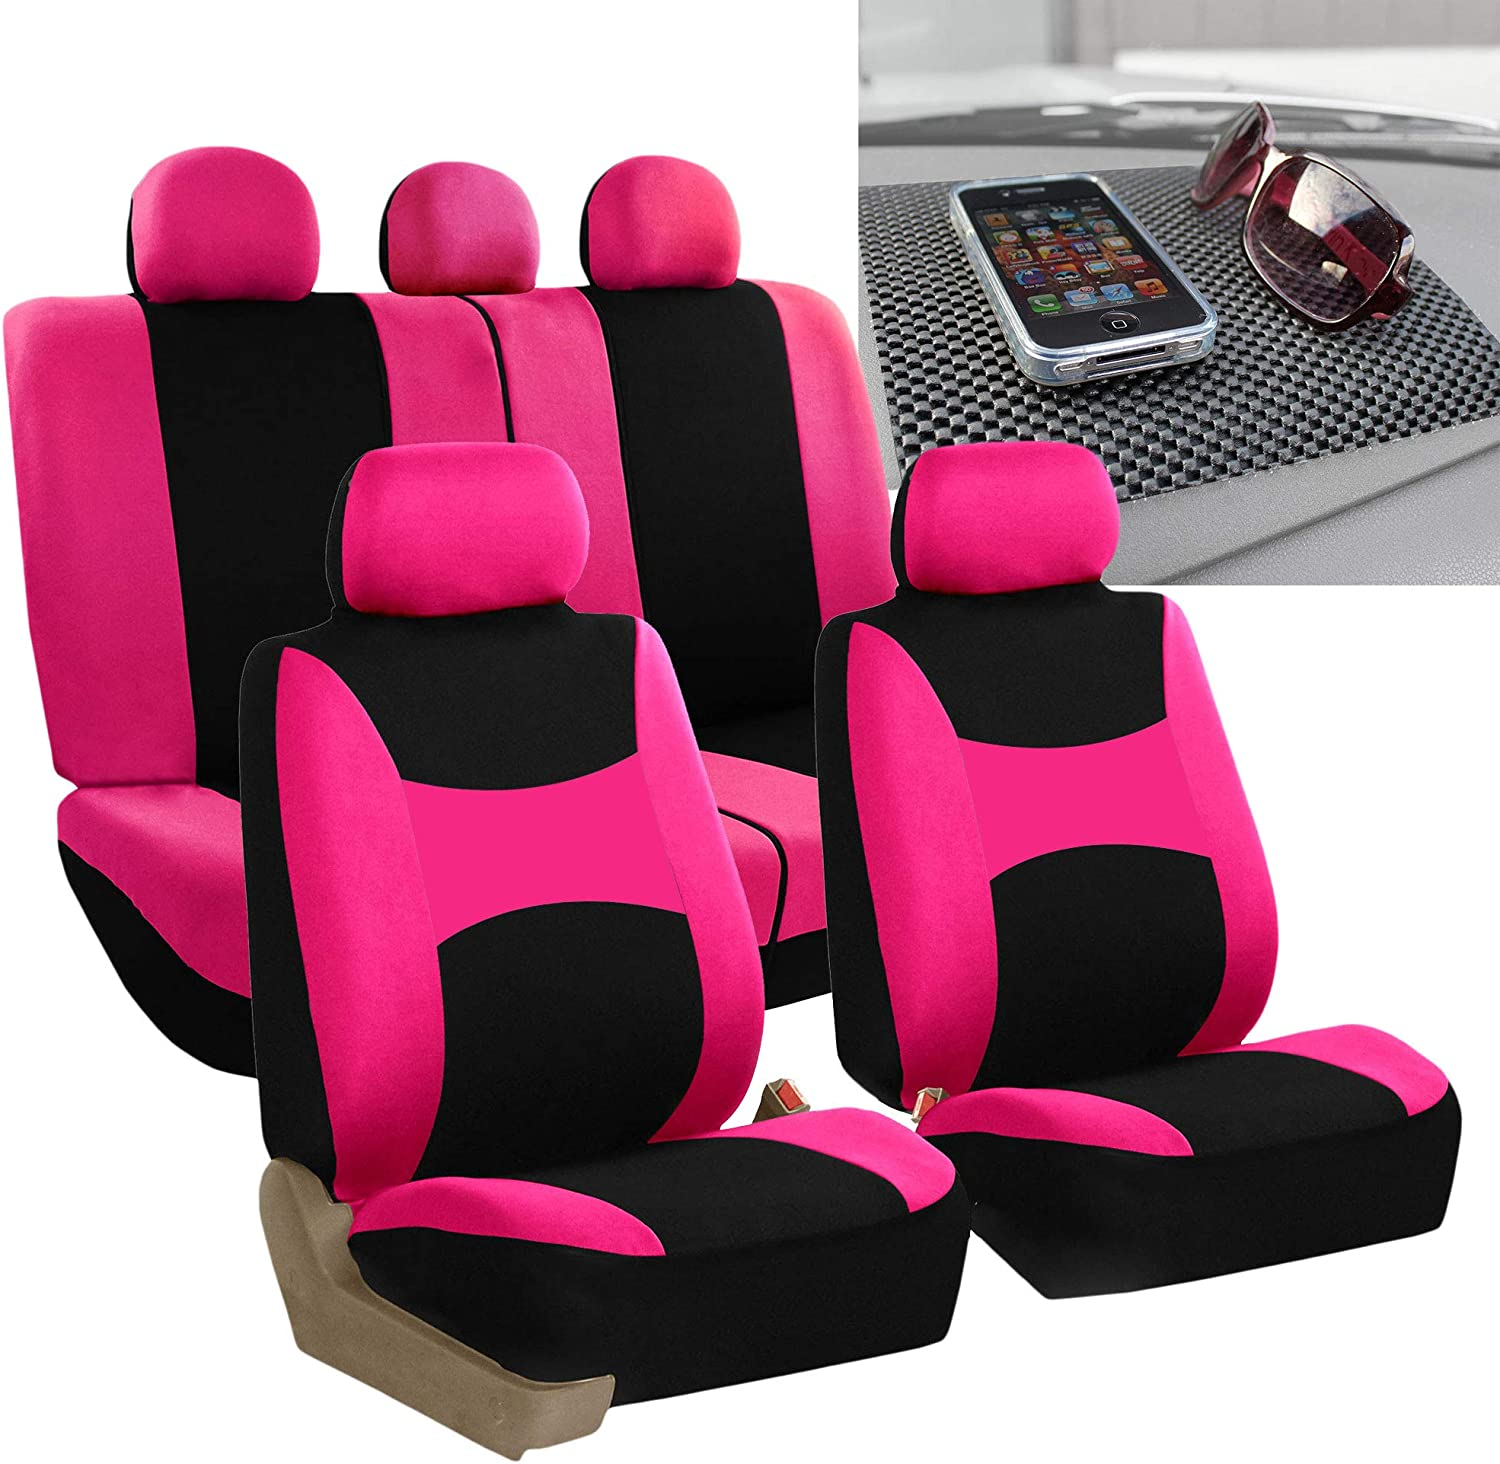 FH Group FB030115 Light & Breezy Cloth Seat Cover Set Airbag & Split Ready, Pink/Black FH1002 Non-Slip Dash Grip Pad- Fit Most Car, Truck, SUV, or Van